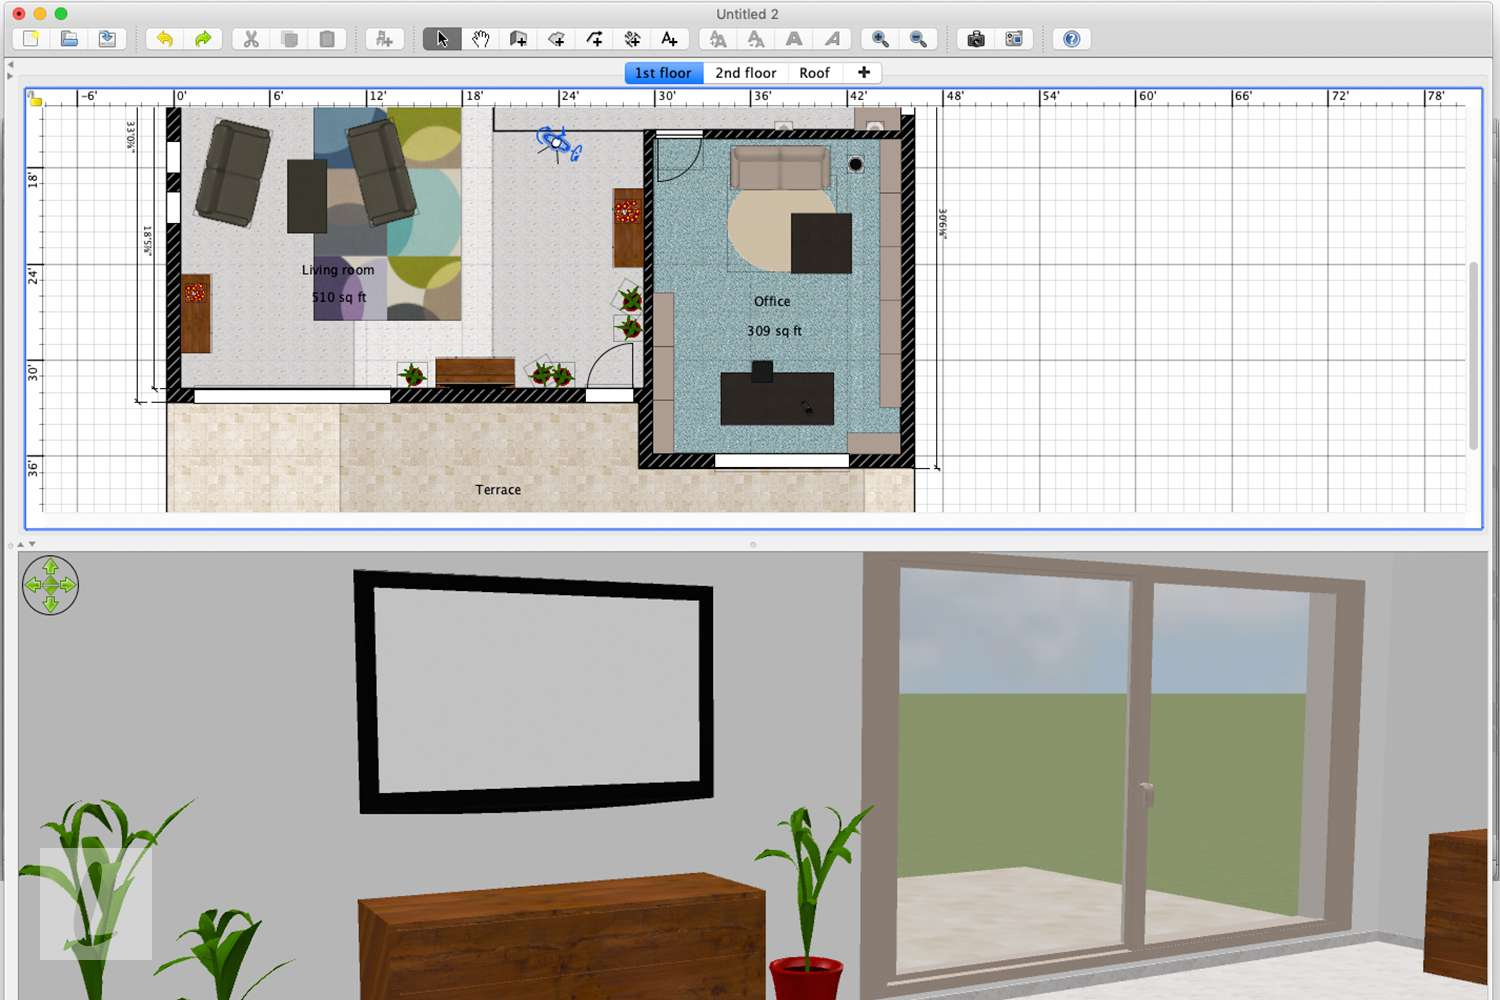 Compare sweet home 3d vs live home 3d in interior design software category based on 16 reviews and. Sweet Home 3d Review Fun And Easy With Some Limitations